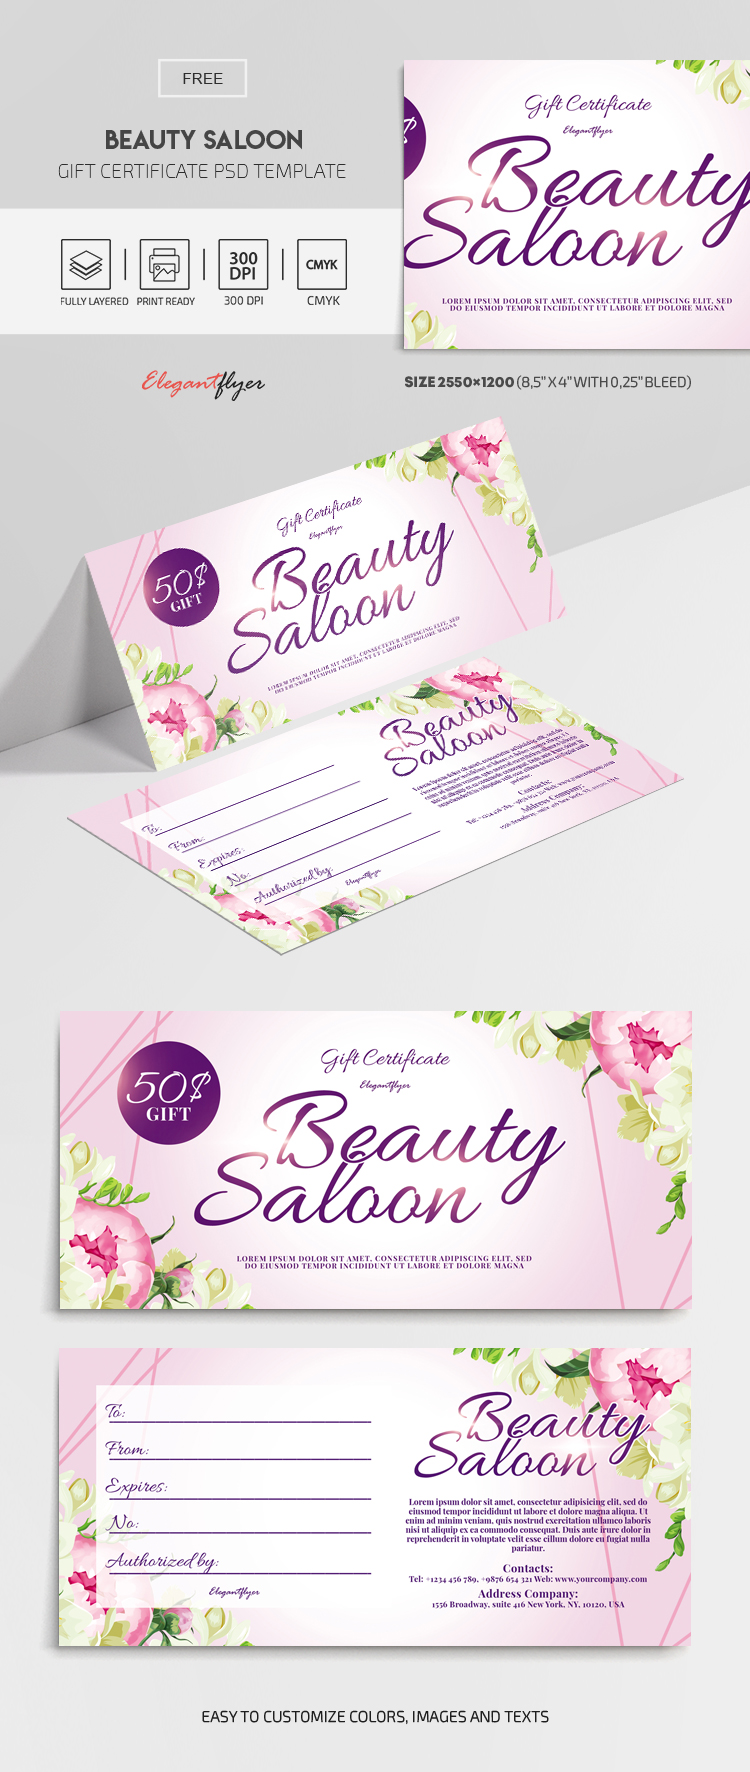 Beauty Saloon – Free Gift Certificate Template in PSD